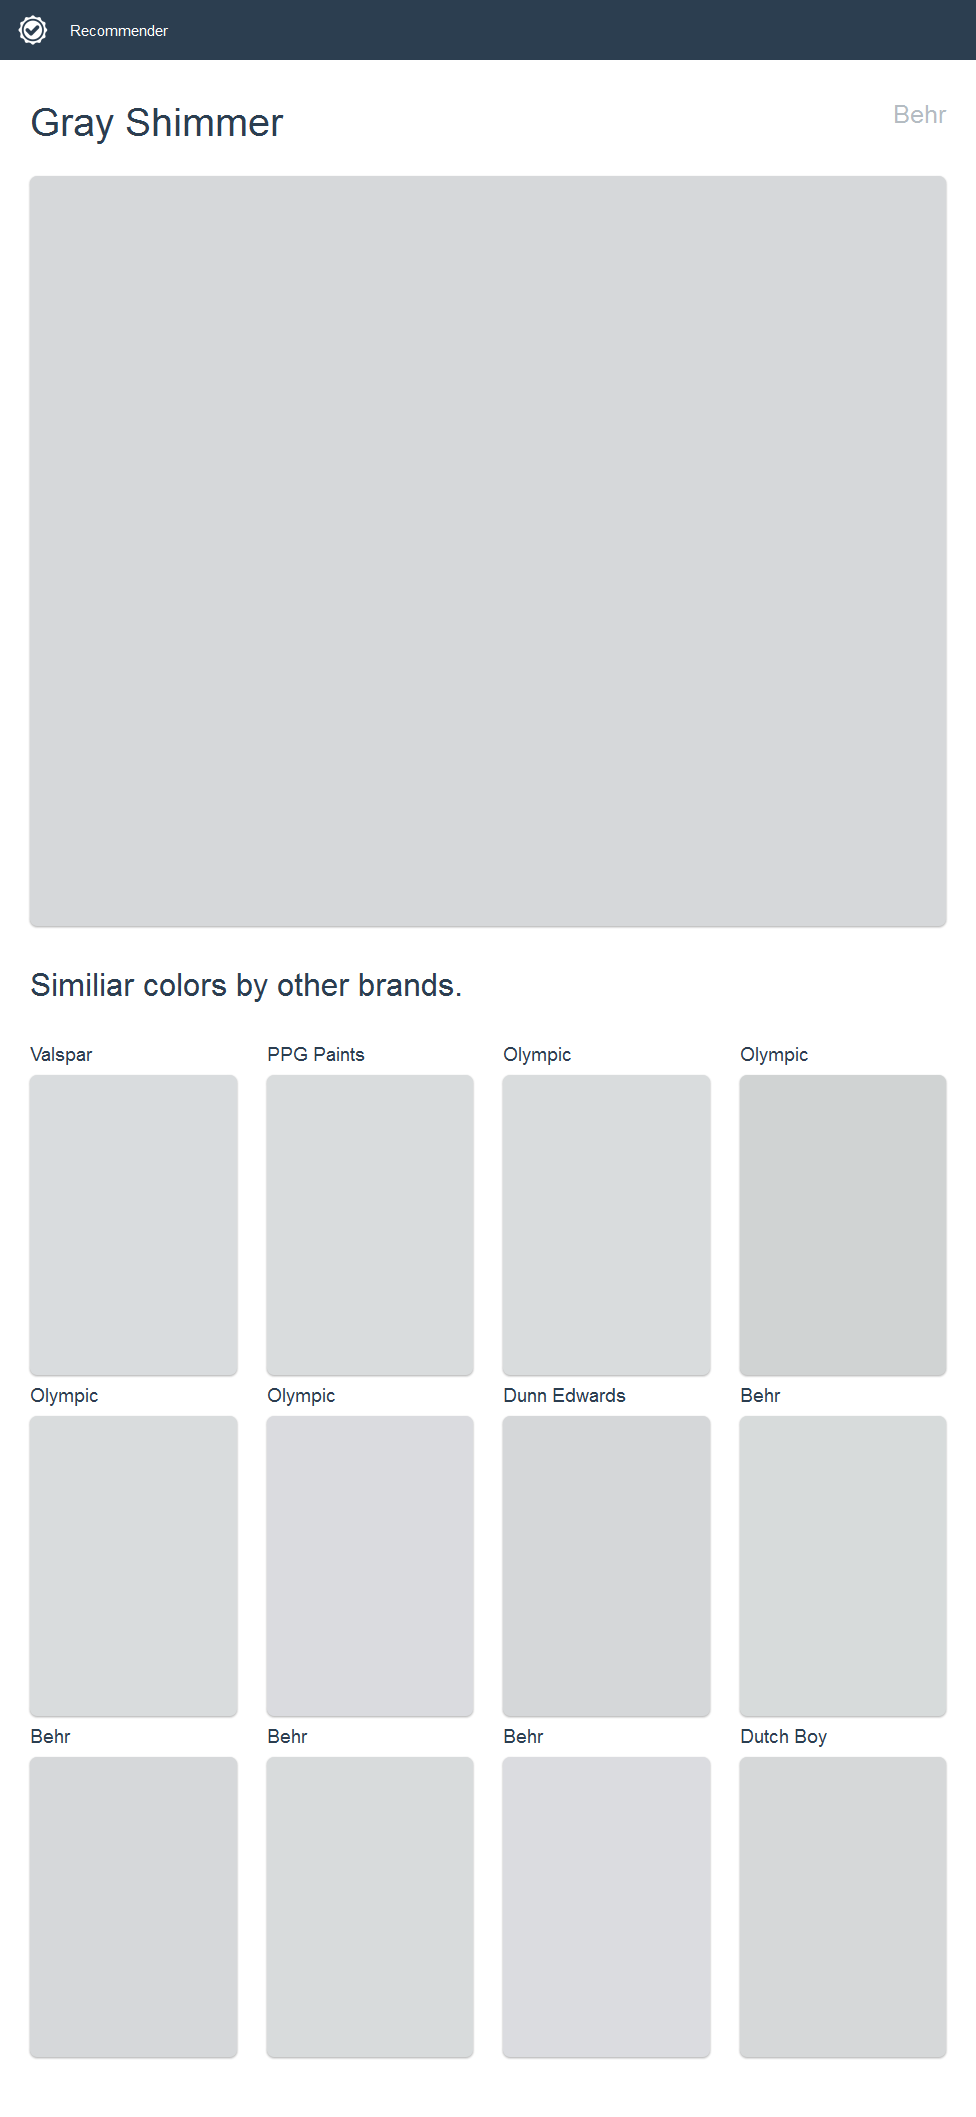 Gray Shimmer Behr Google Search Paint Color Pinterest